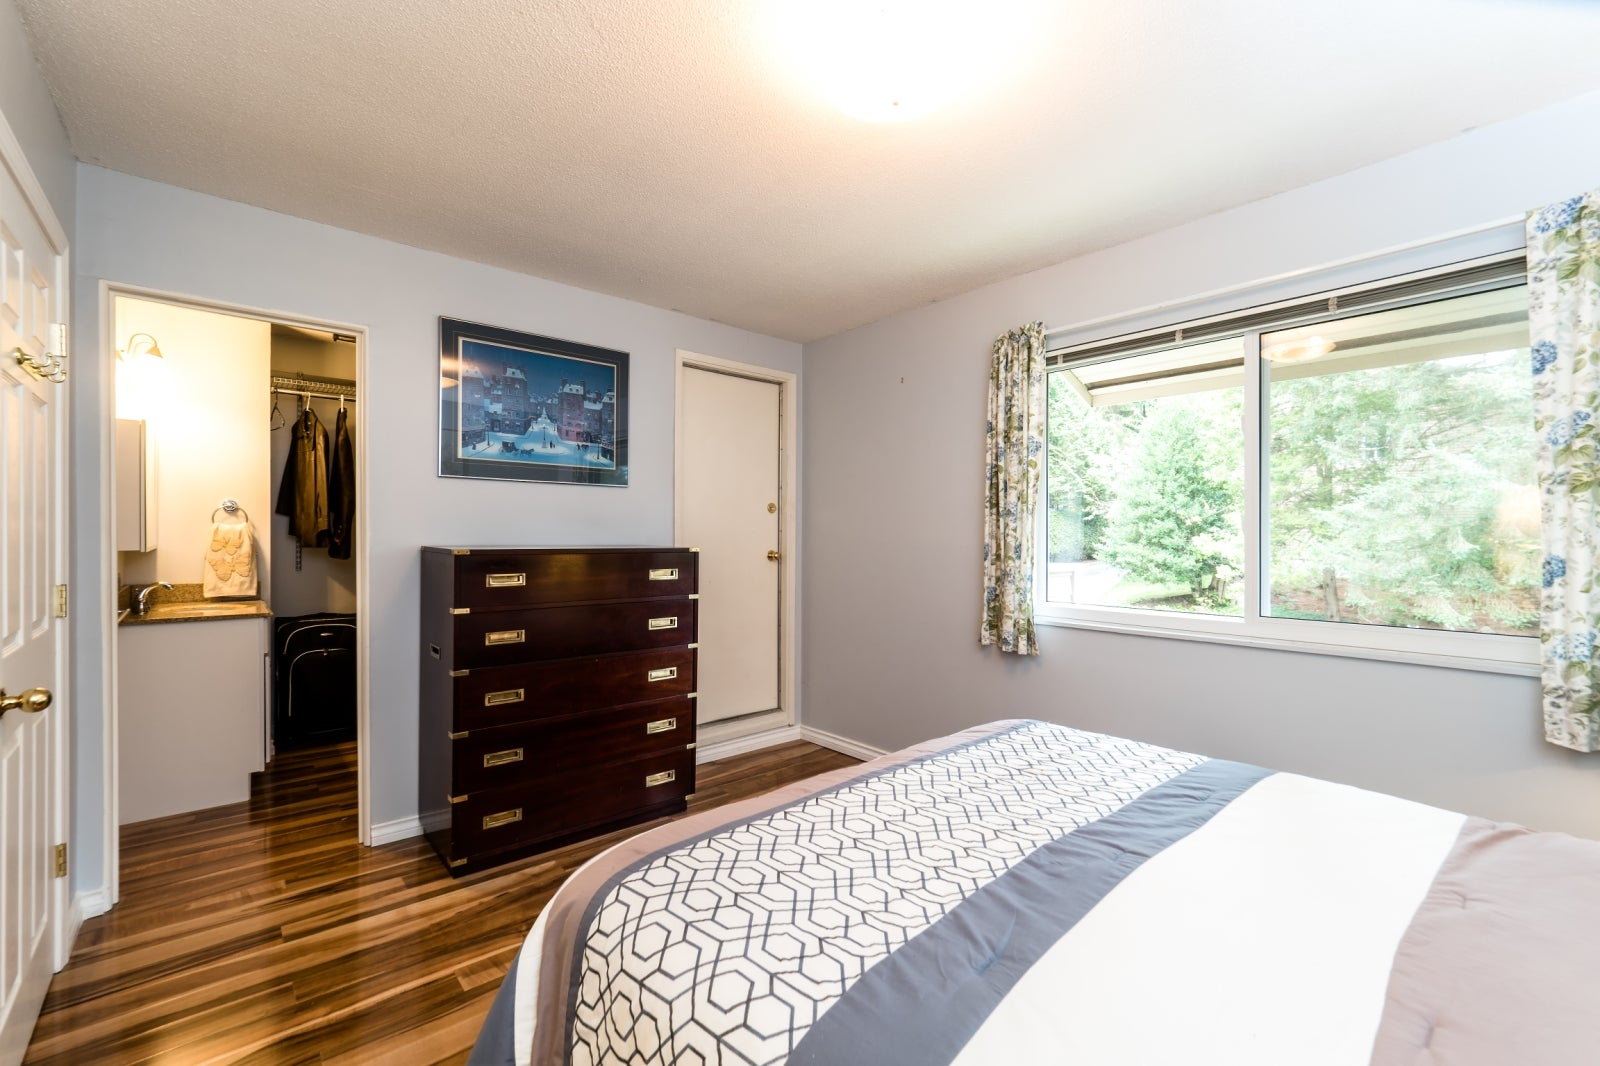 Master Bedroom with Balcony and Large Walk-In Closet